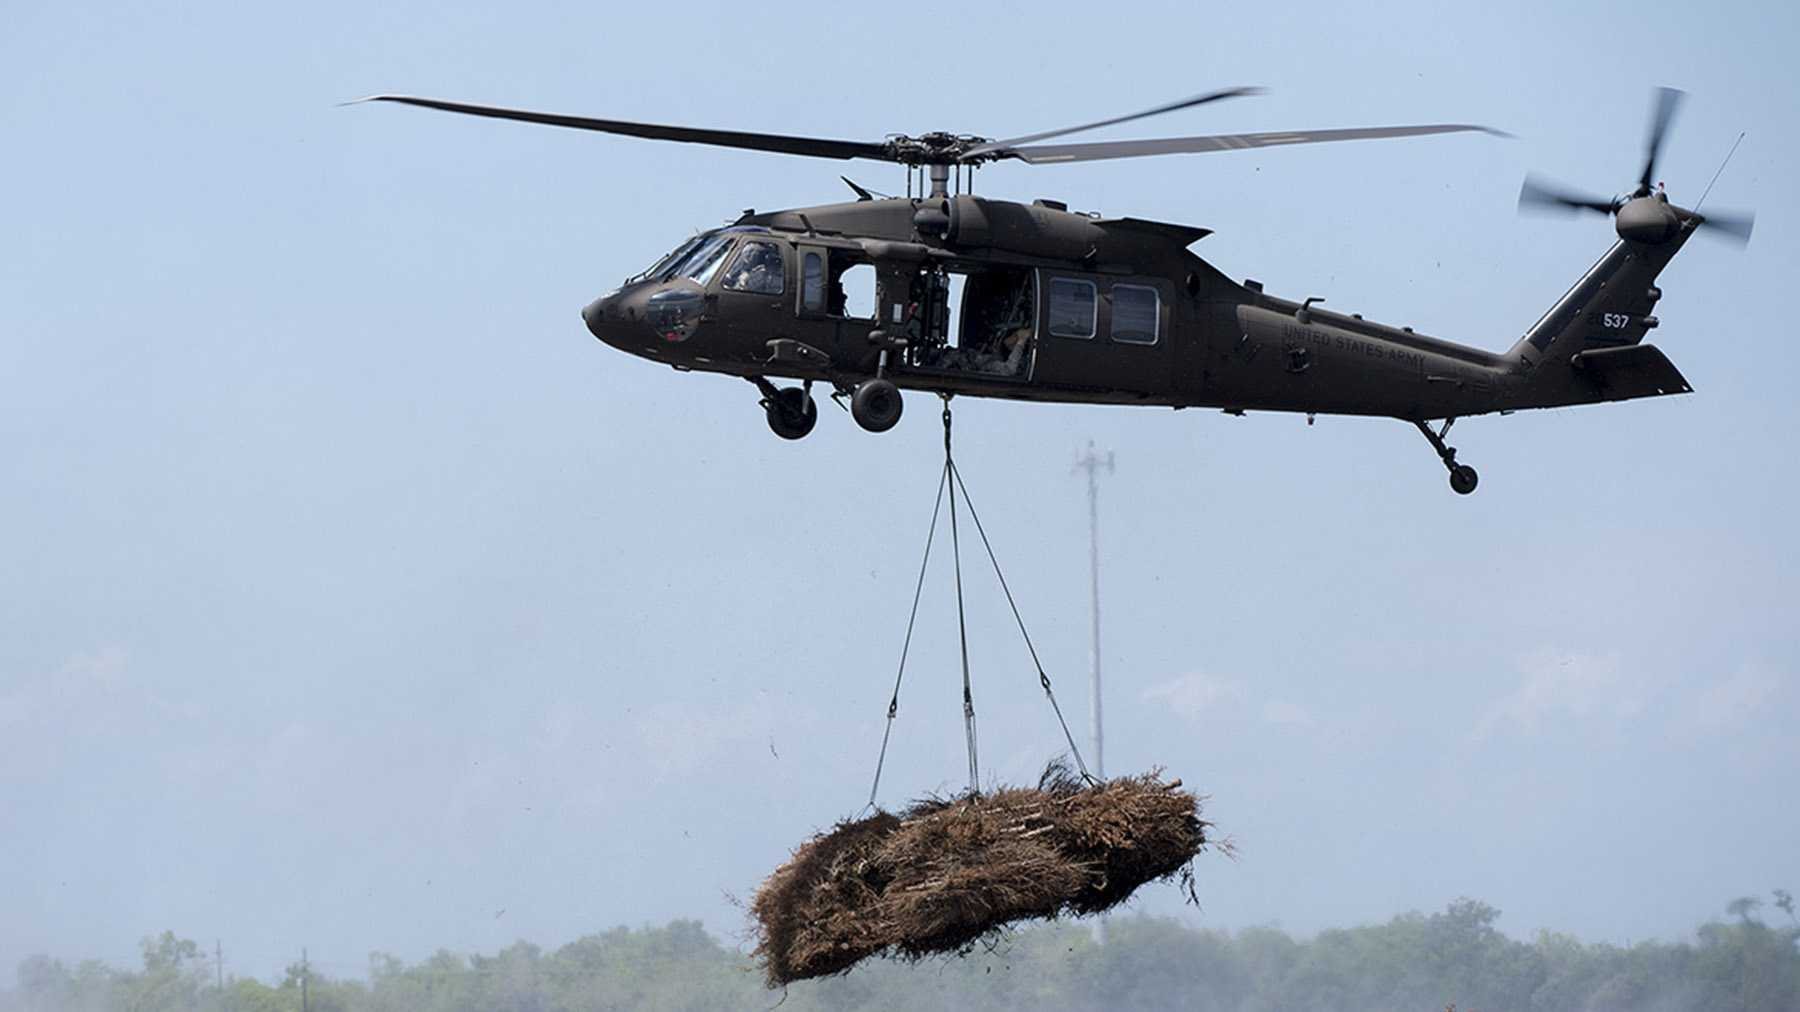 Members of the Louisiana National Guard's 1st Assault Helicopter Battalion, 244th Aviation Regiment partnered with the U.S. Fish and Wildlife Service on Thursday for the Christmas Tree Drop.